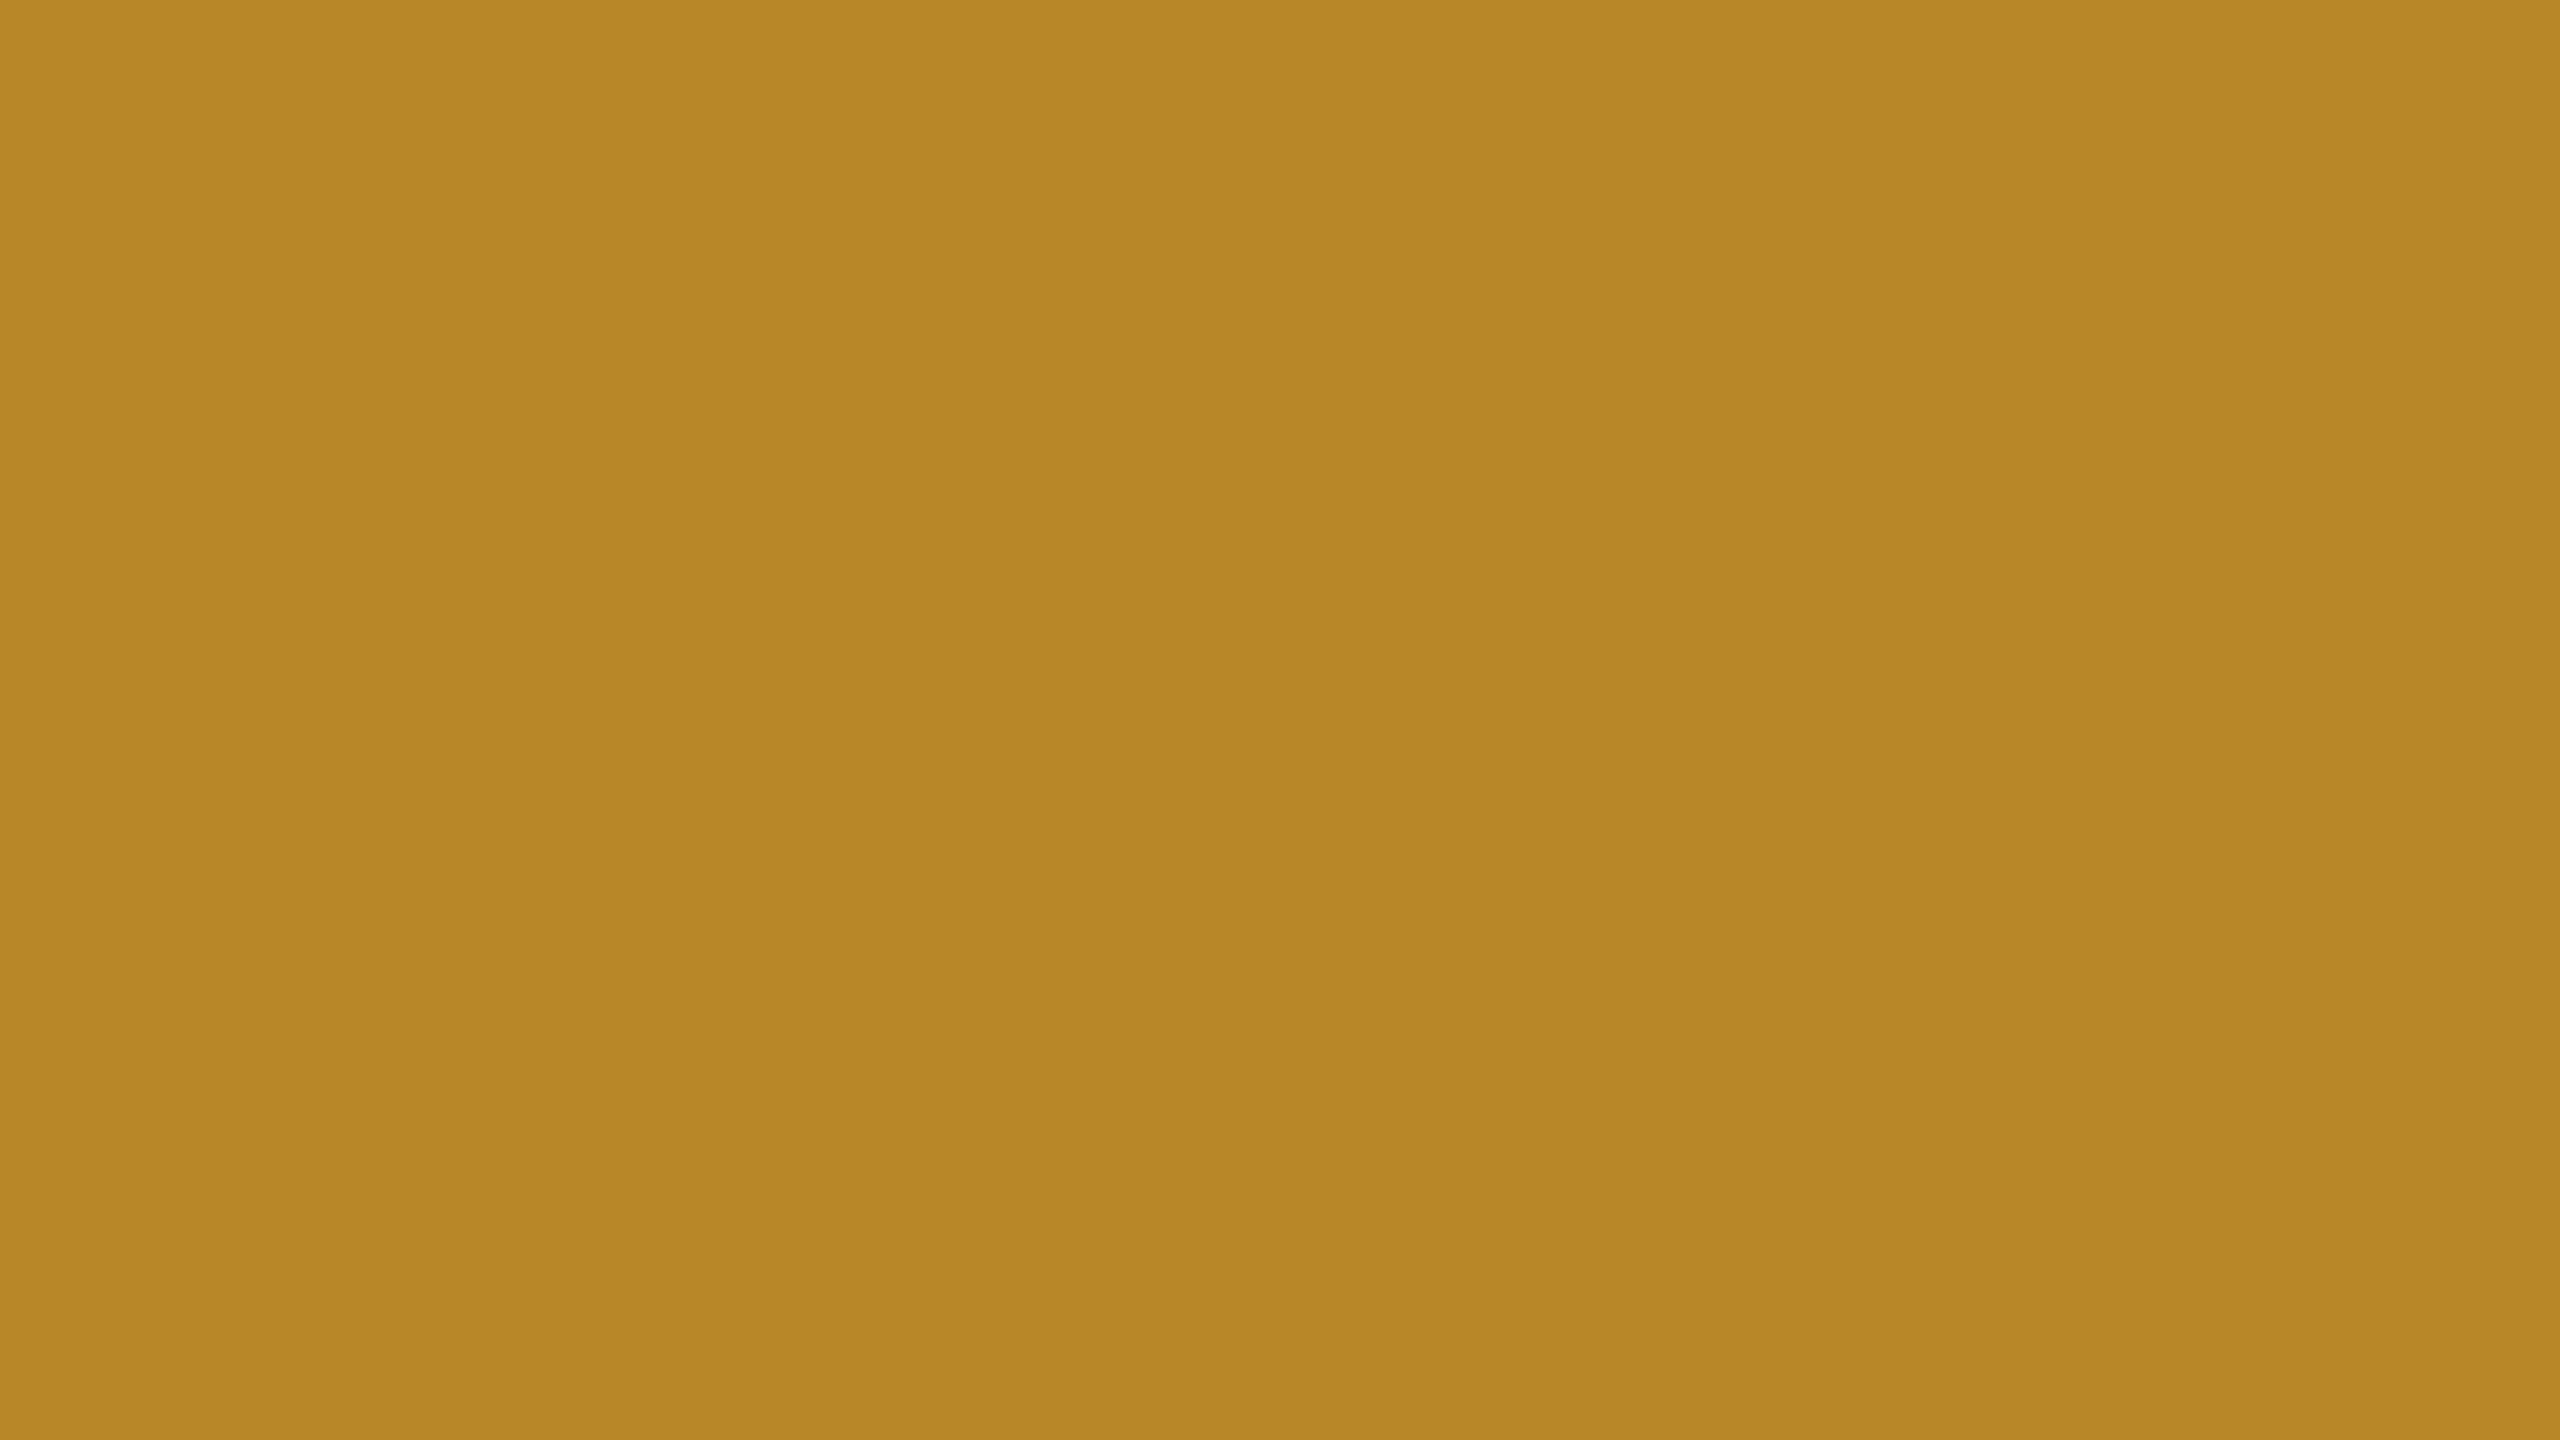 Gold Color Background - WallpaperSafari